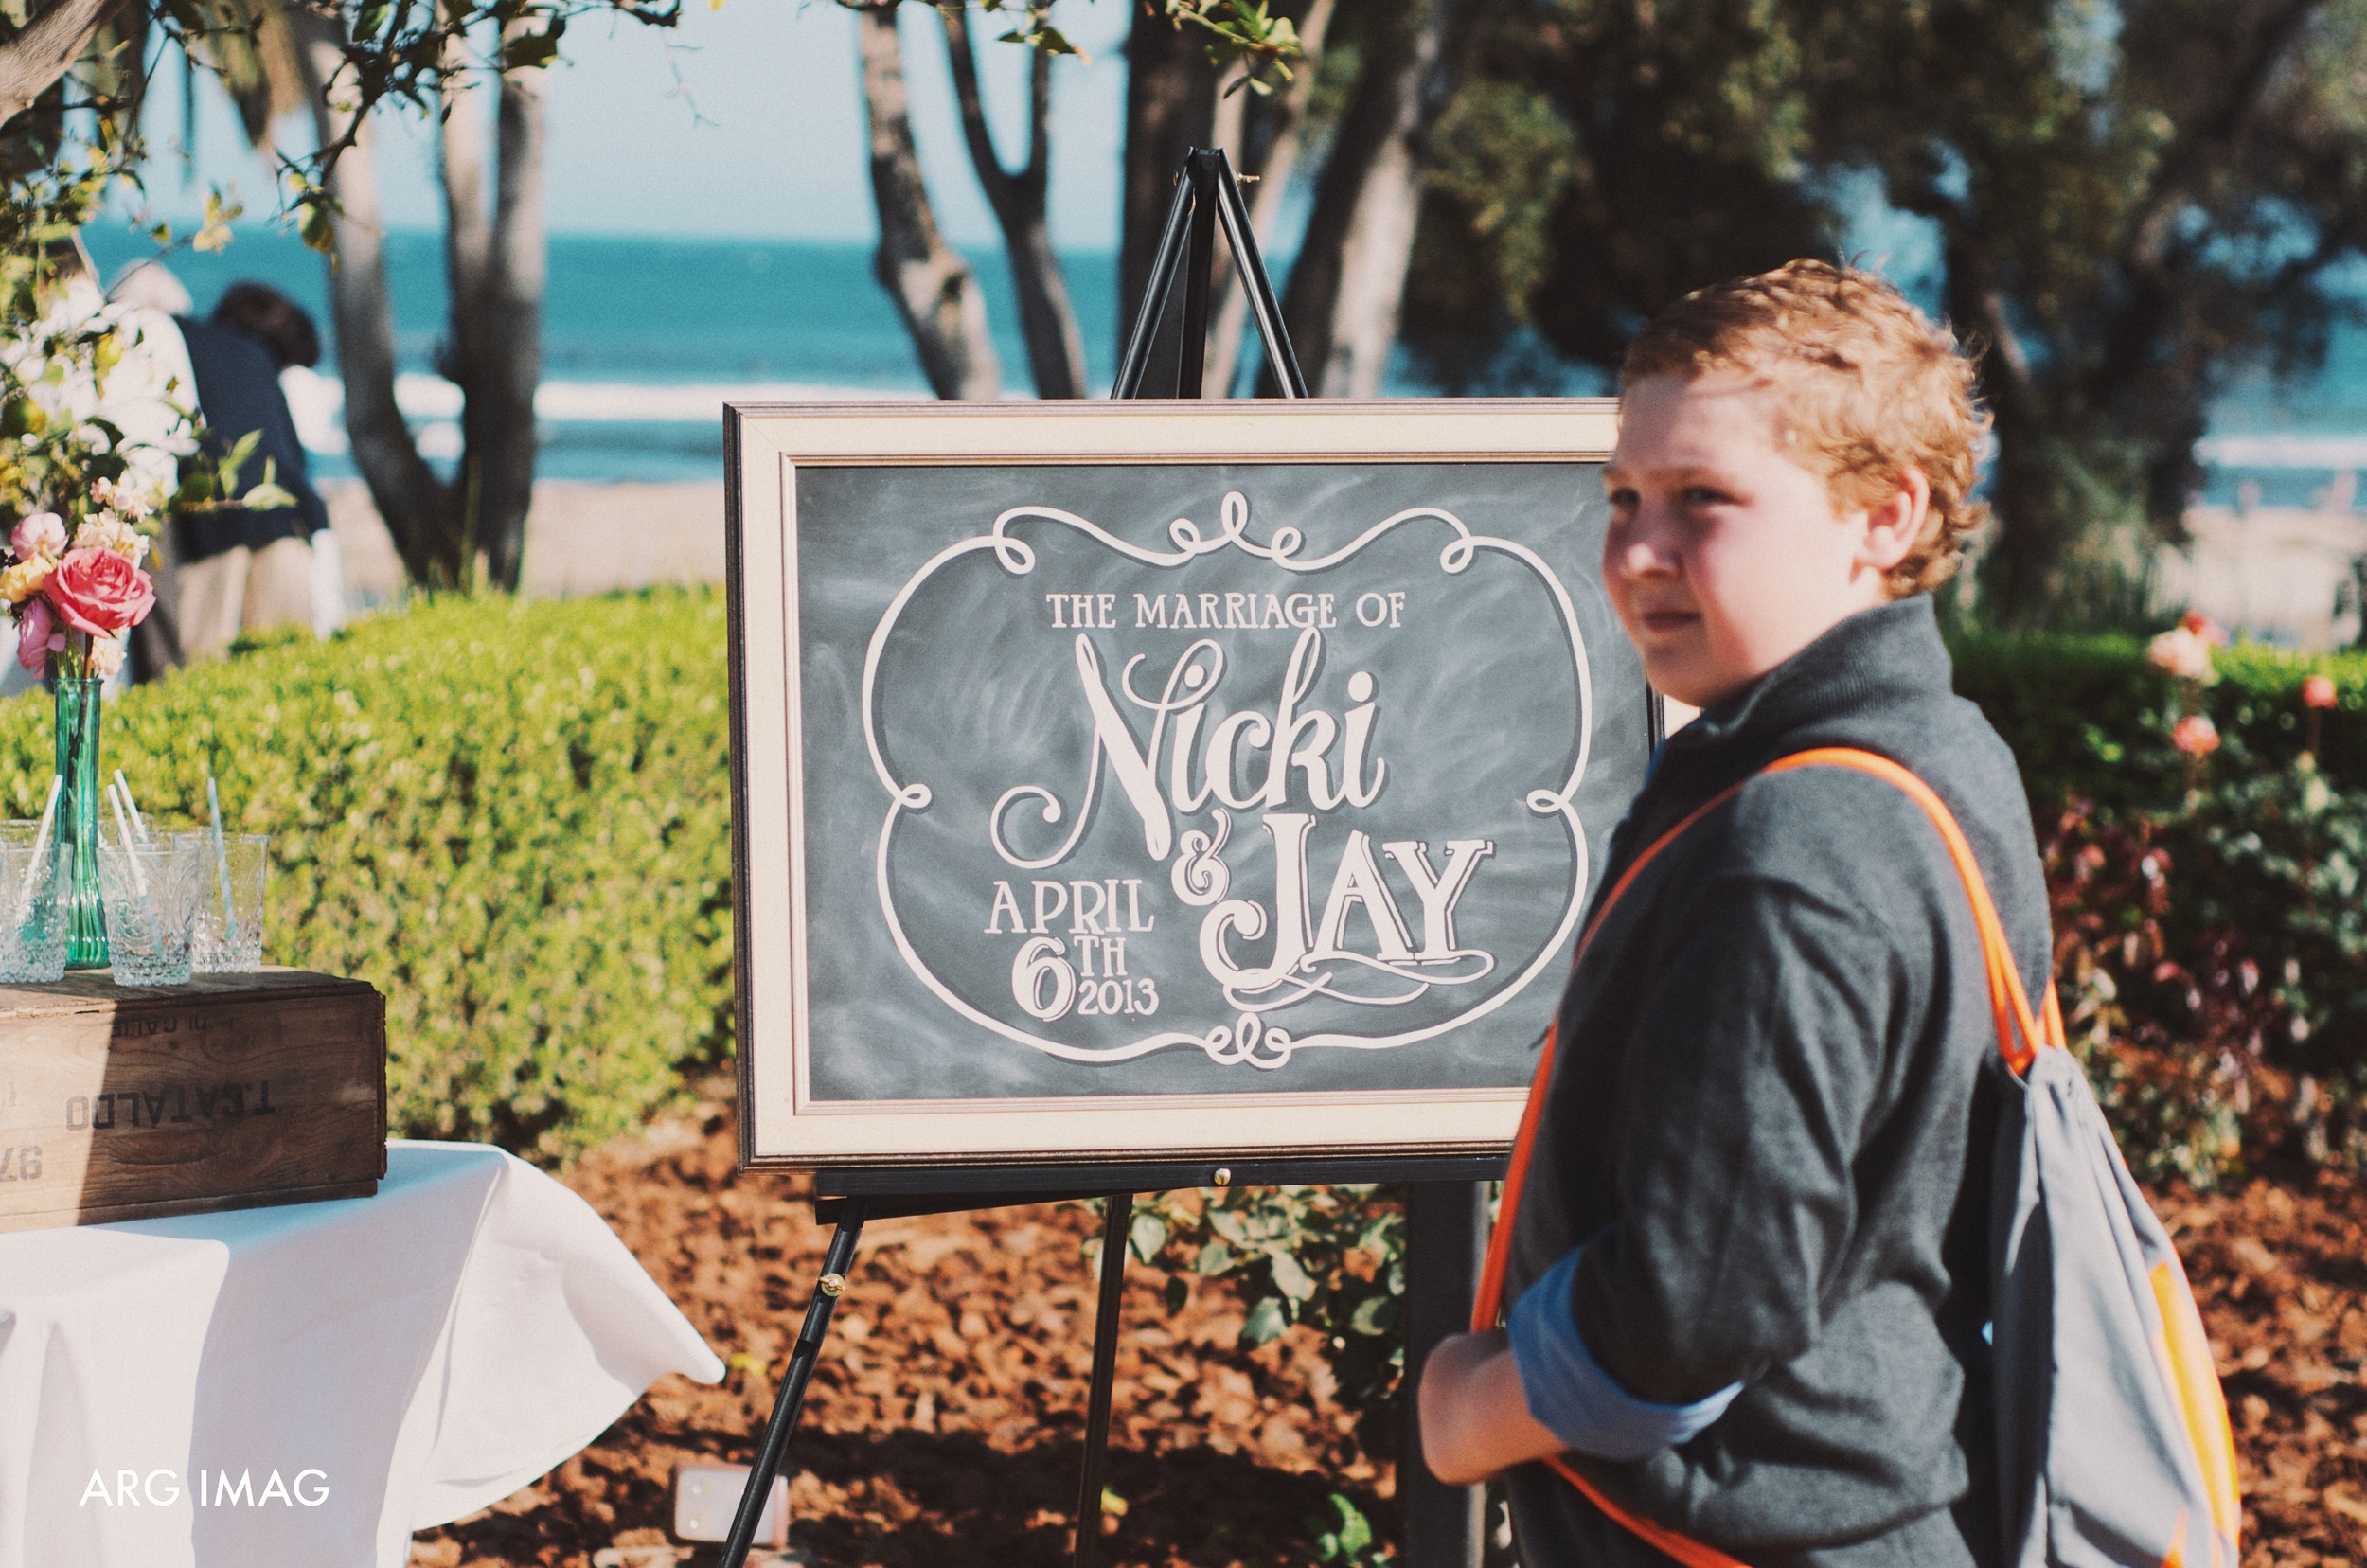 Nicki & Jay | Malibu Wedding | 4-6-13 (4).jpg